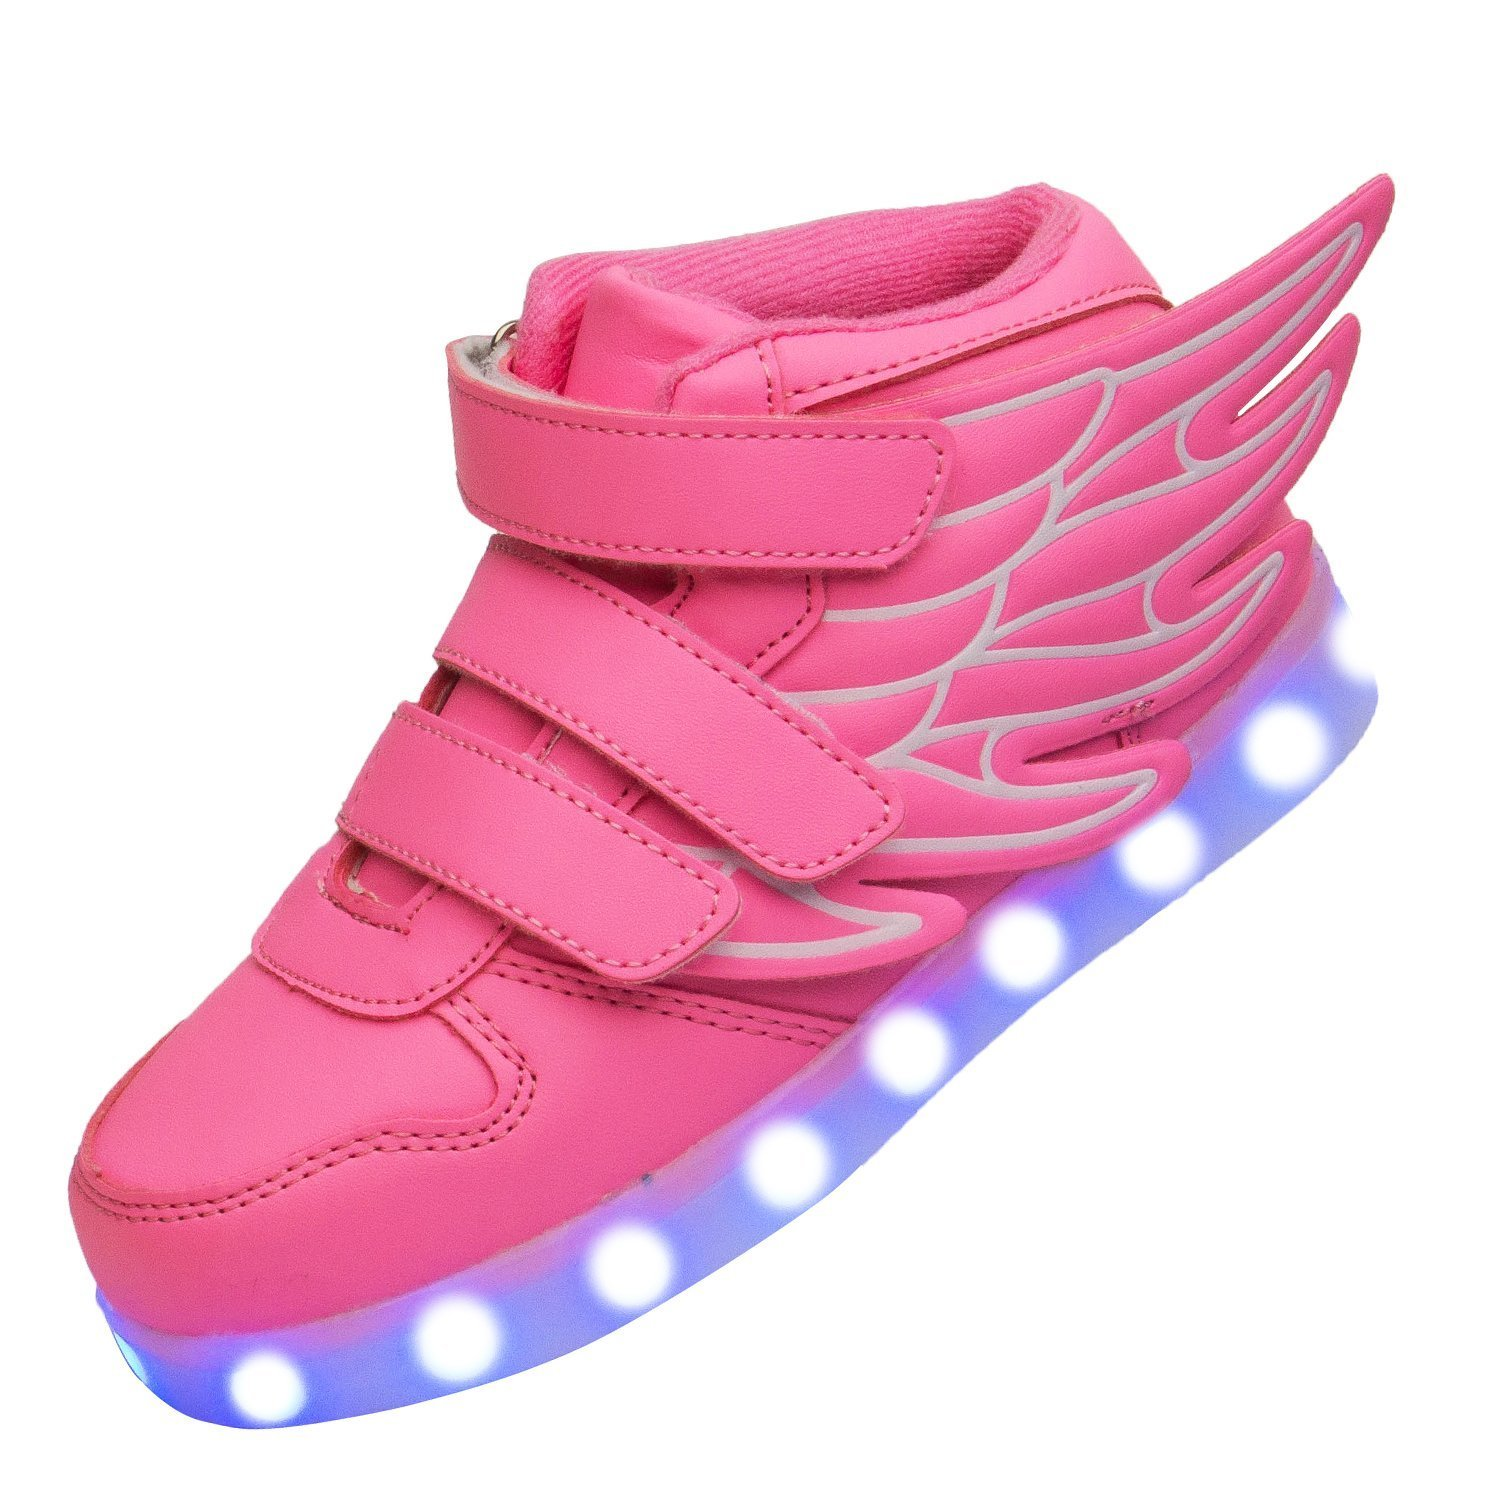 Summer new children's shoes wings USB children's leisure sports LED light shoes